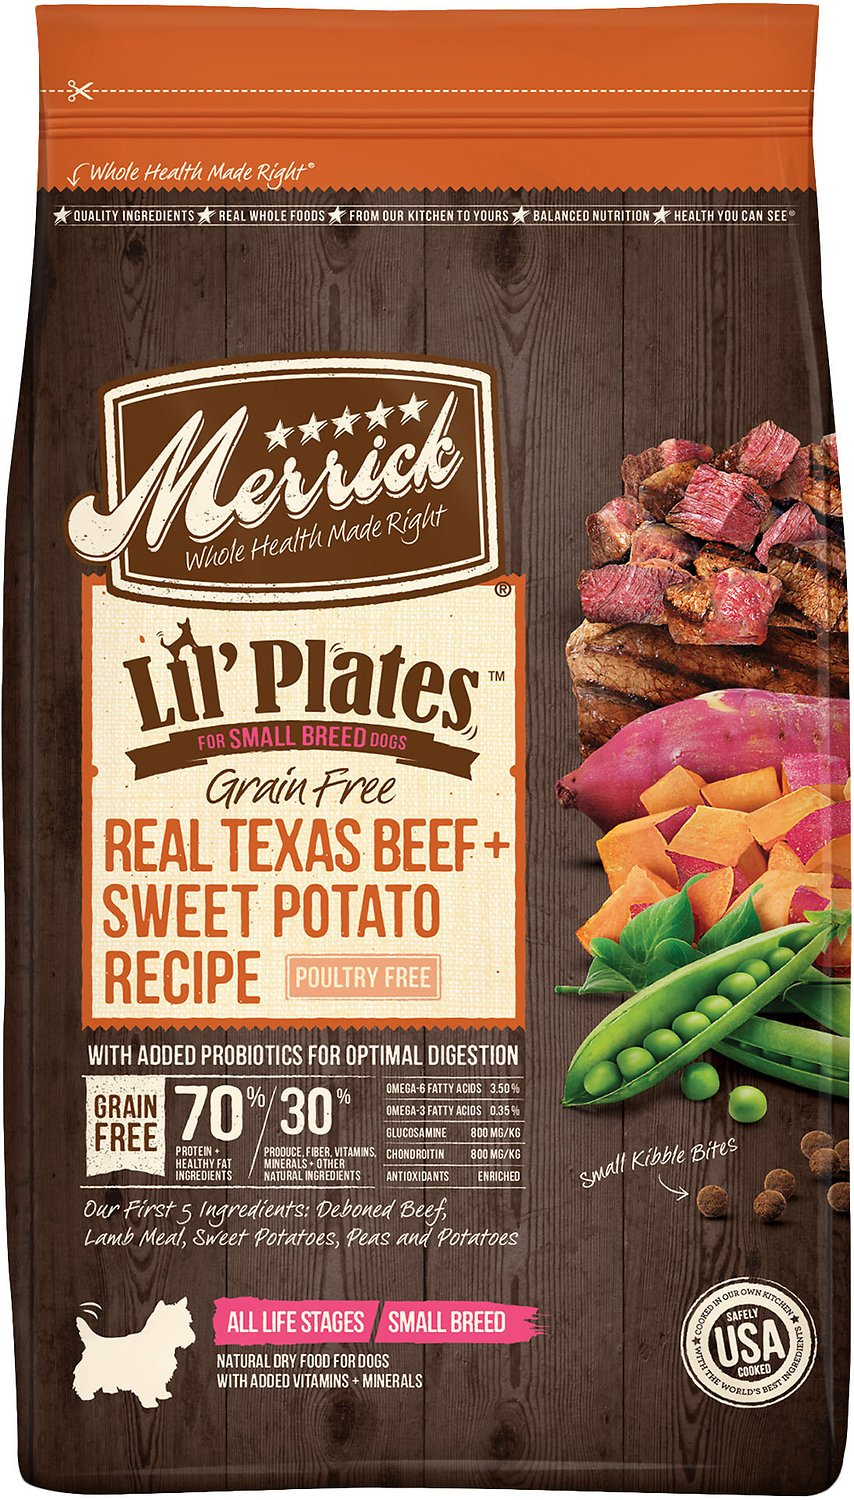 Merrick Lil' Plates Grain-Free Real Beef & Sweet Potato Dry Dog Food Image